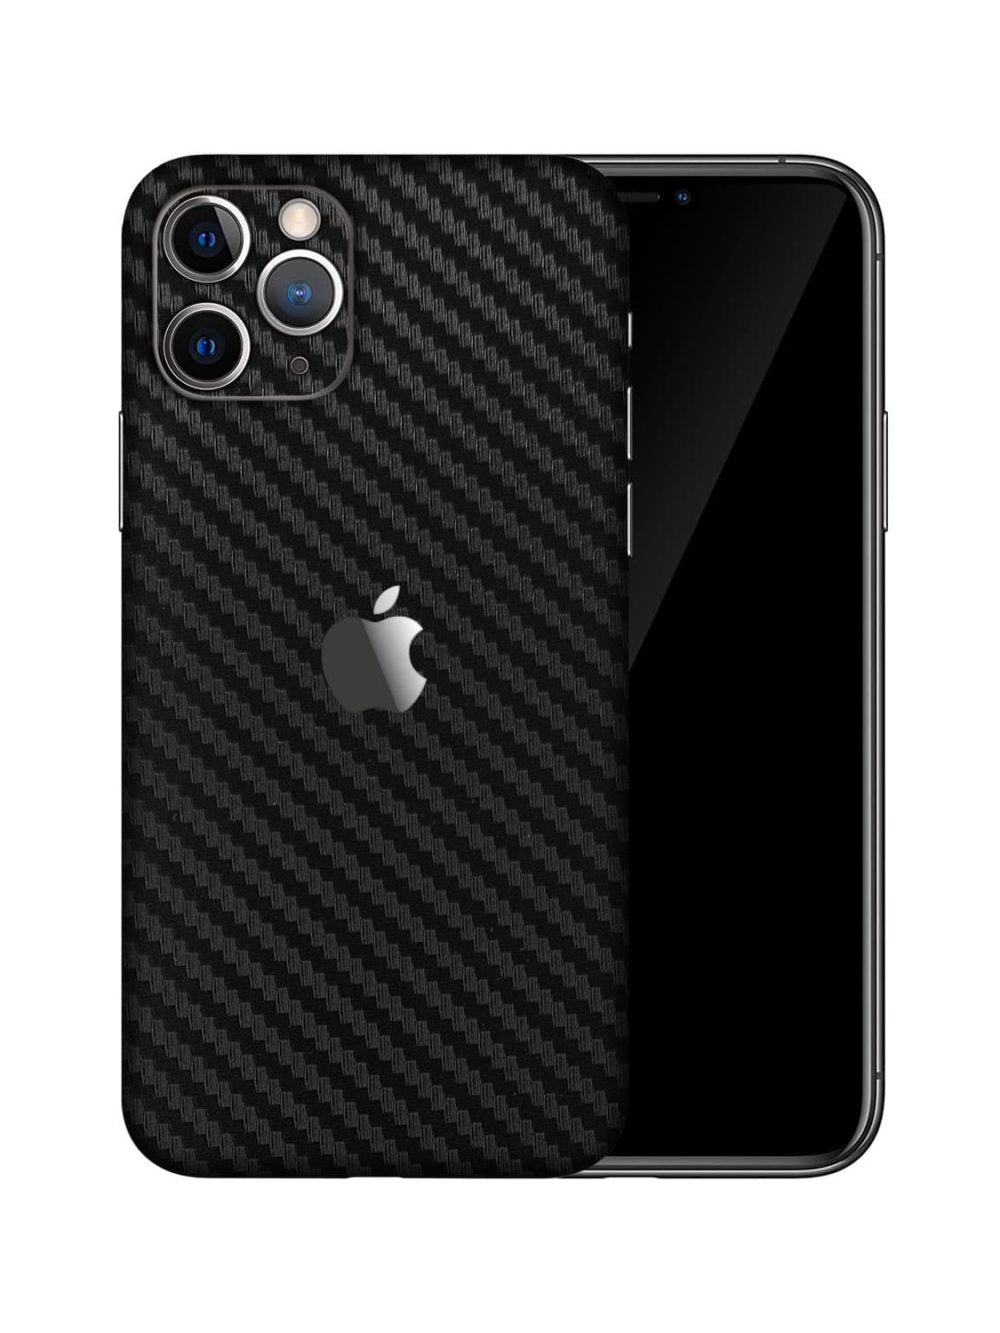 Apple iPhone 11 Pro Max CARBON FIBRE Vinyl Skin Wrap